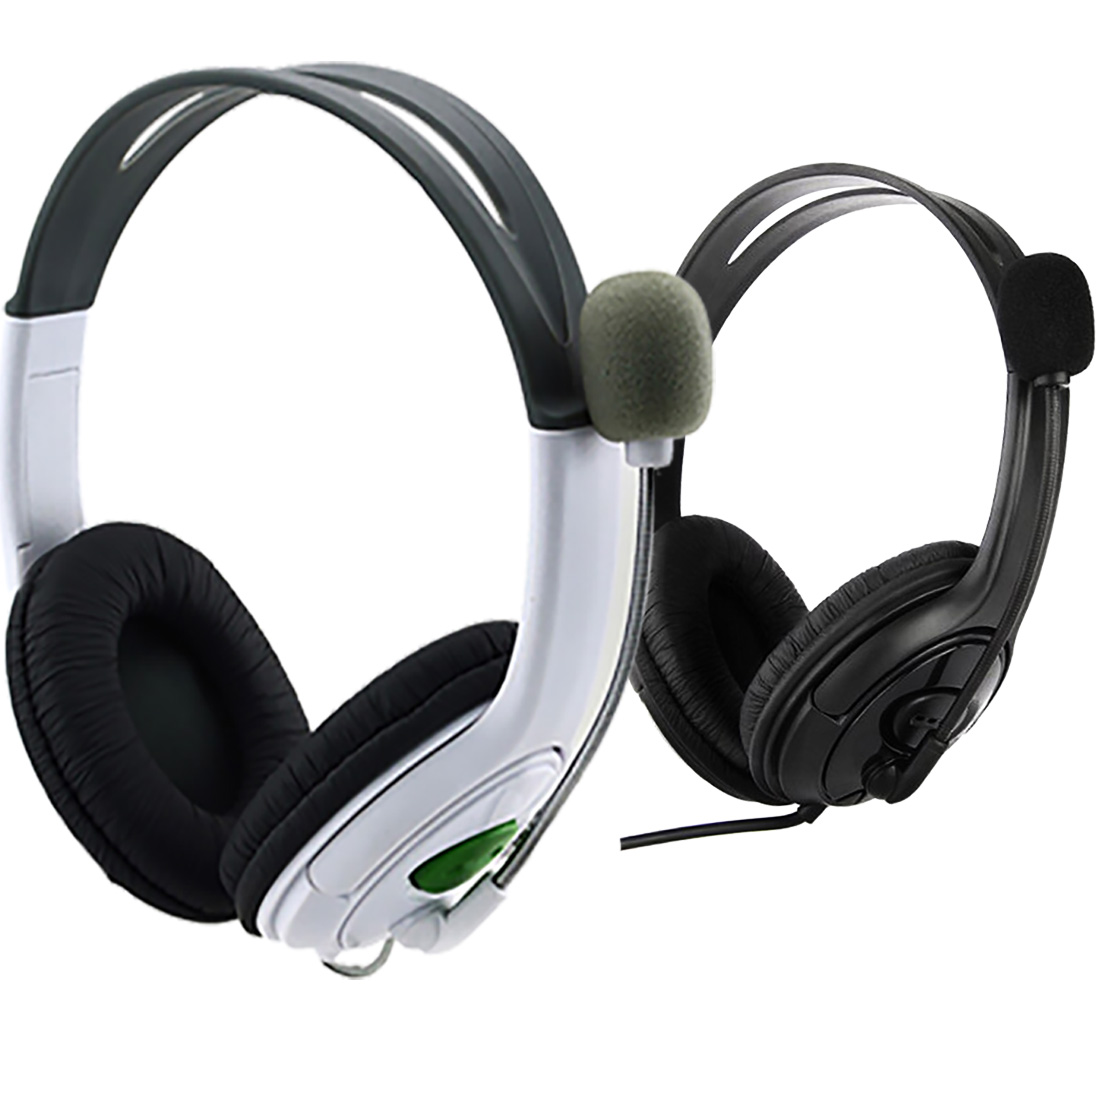 Marsnaska PC Gamer Over-ear Game Gaming Headphone Headset usb dual Earphone Headband with Mic Stereo Bass for ps3 pc bcmaster gaming headset pc gamer stereo bass over ear gaming headphone with mic microphone for computer game earphone